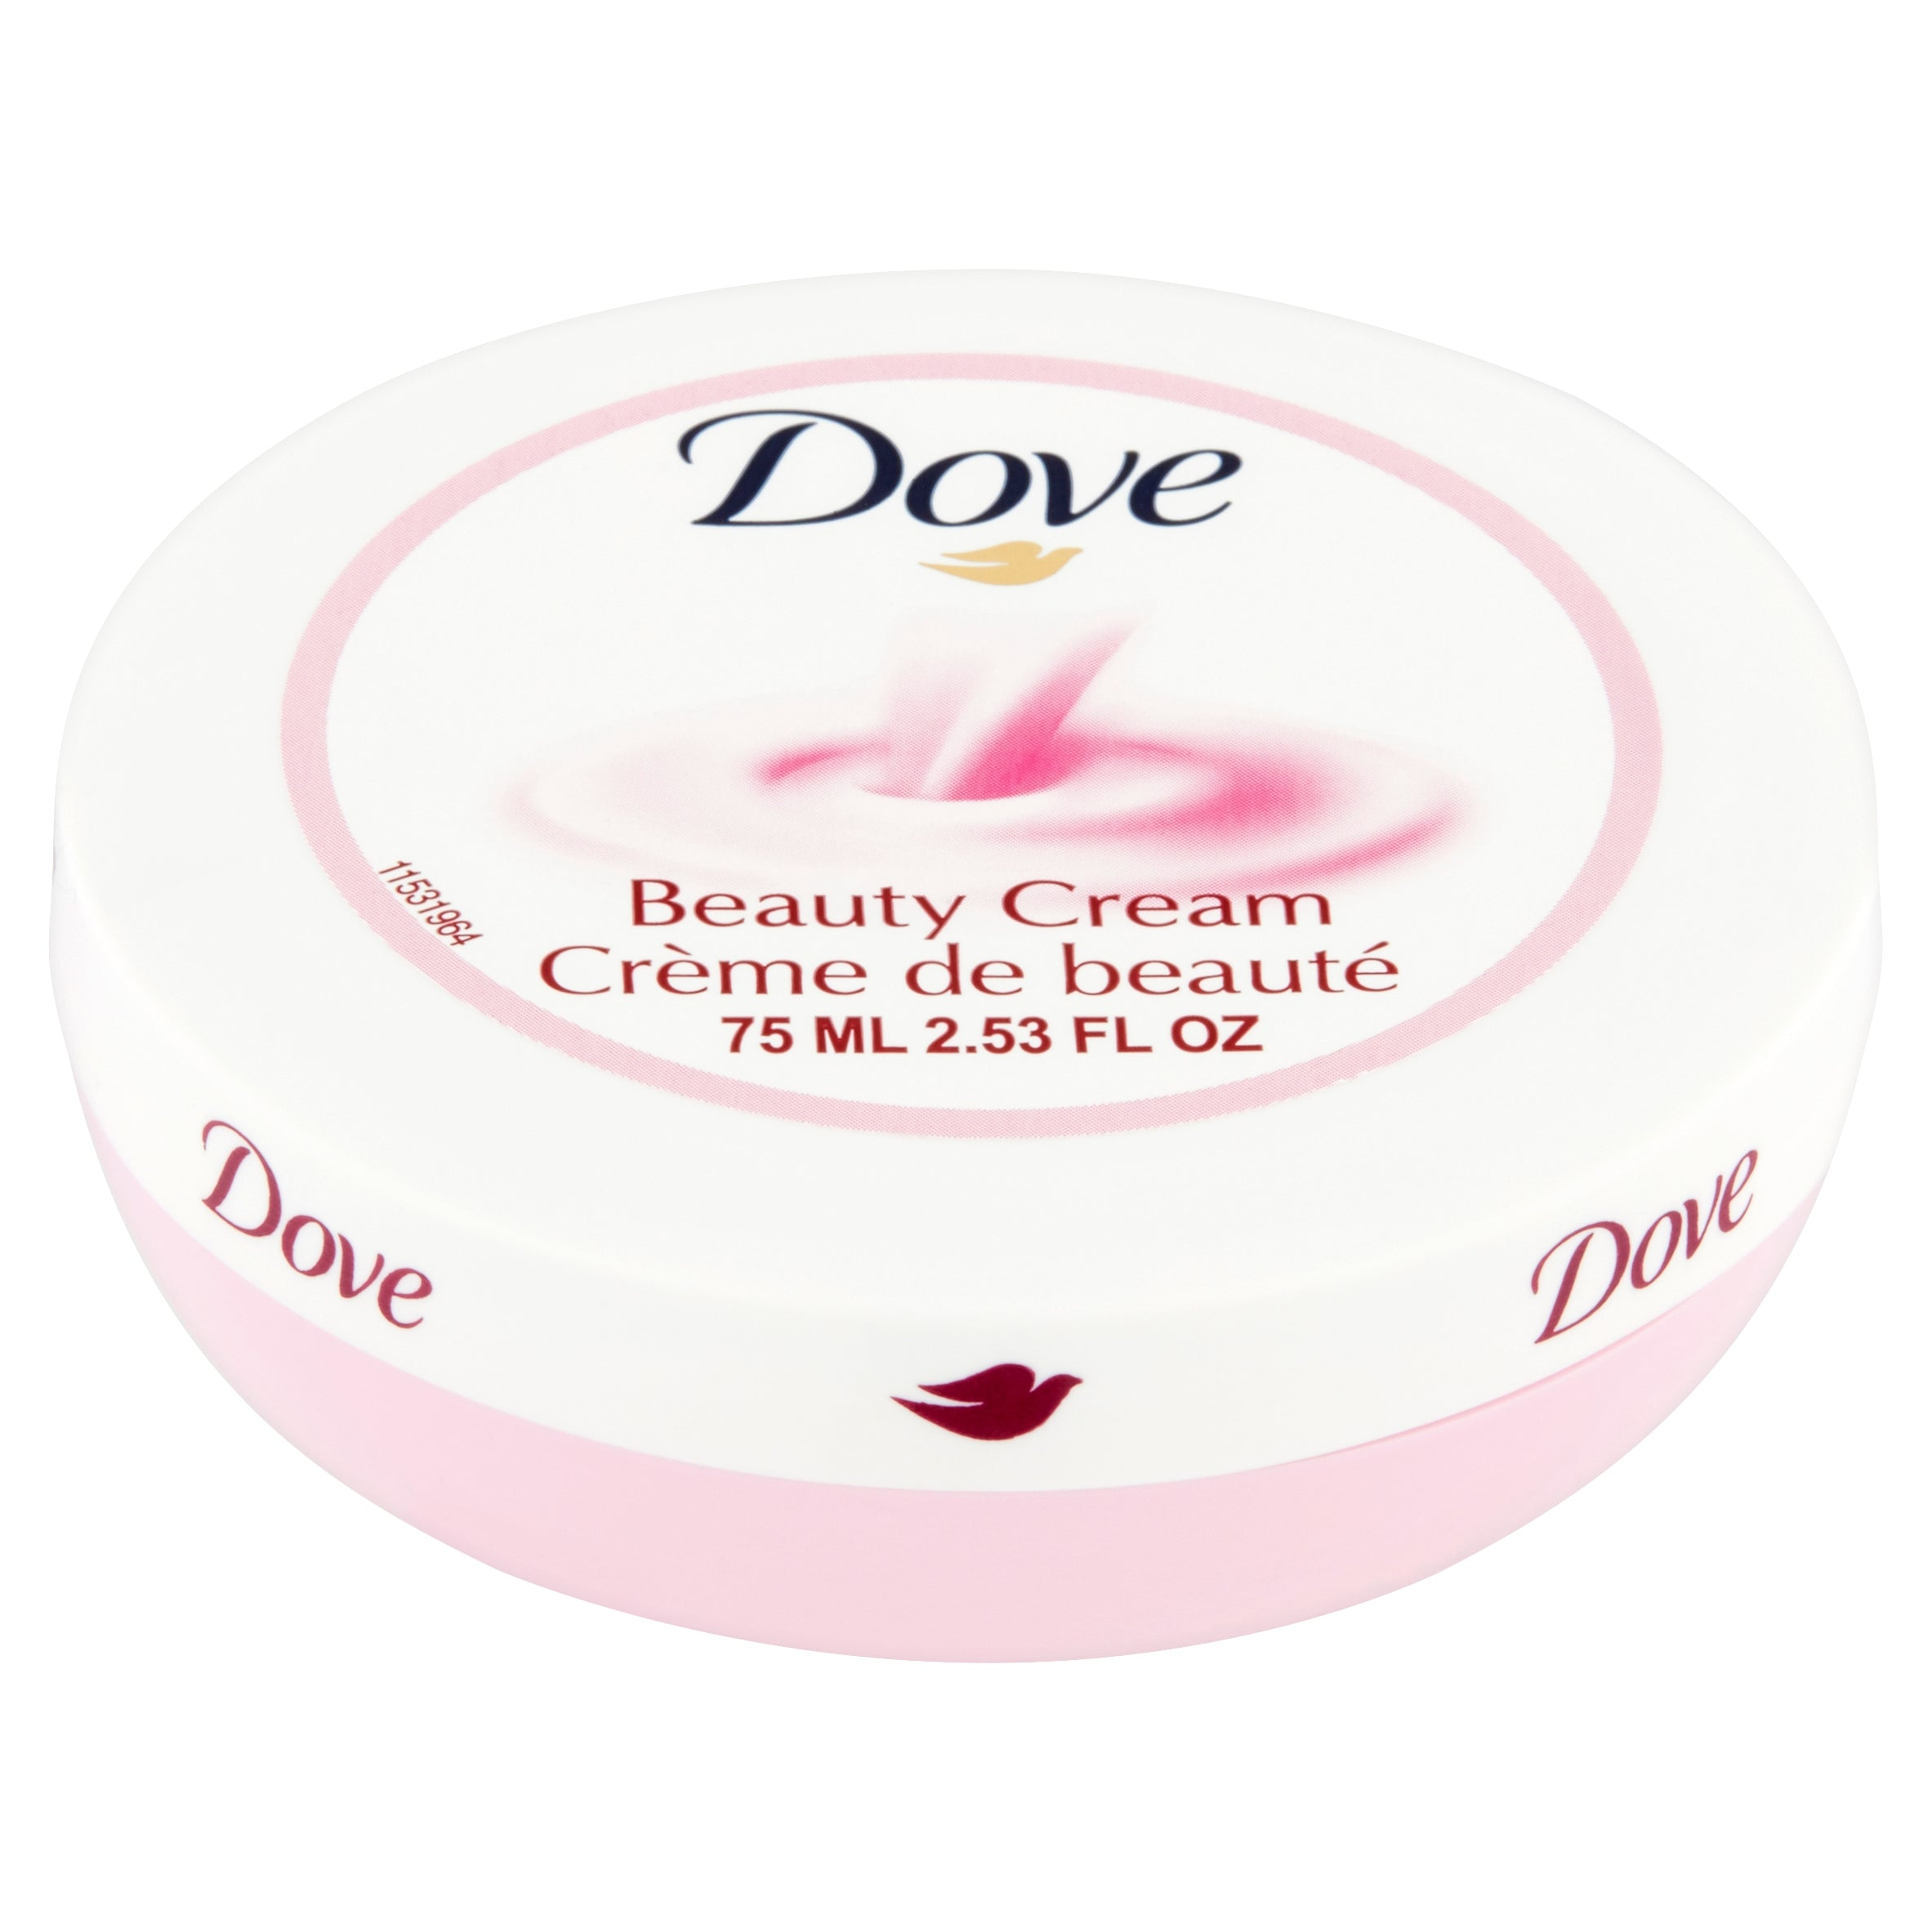 Dove Beauty Cream (2.53 fl oz)